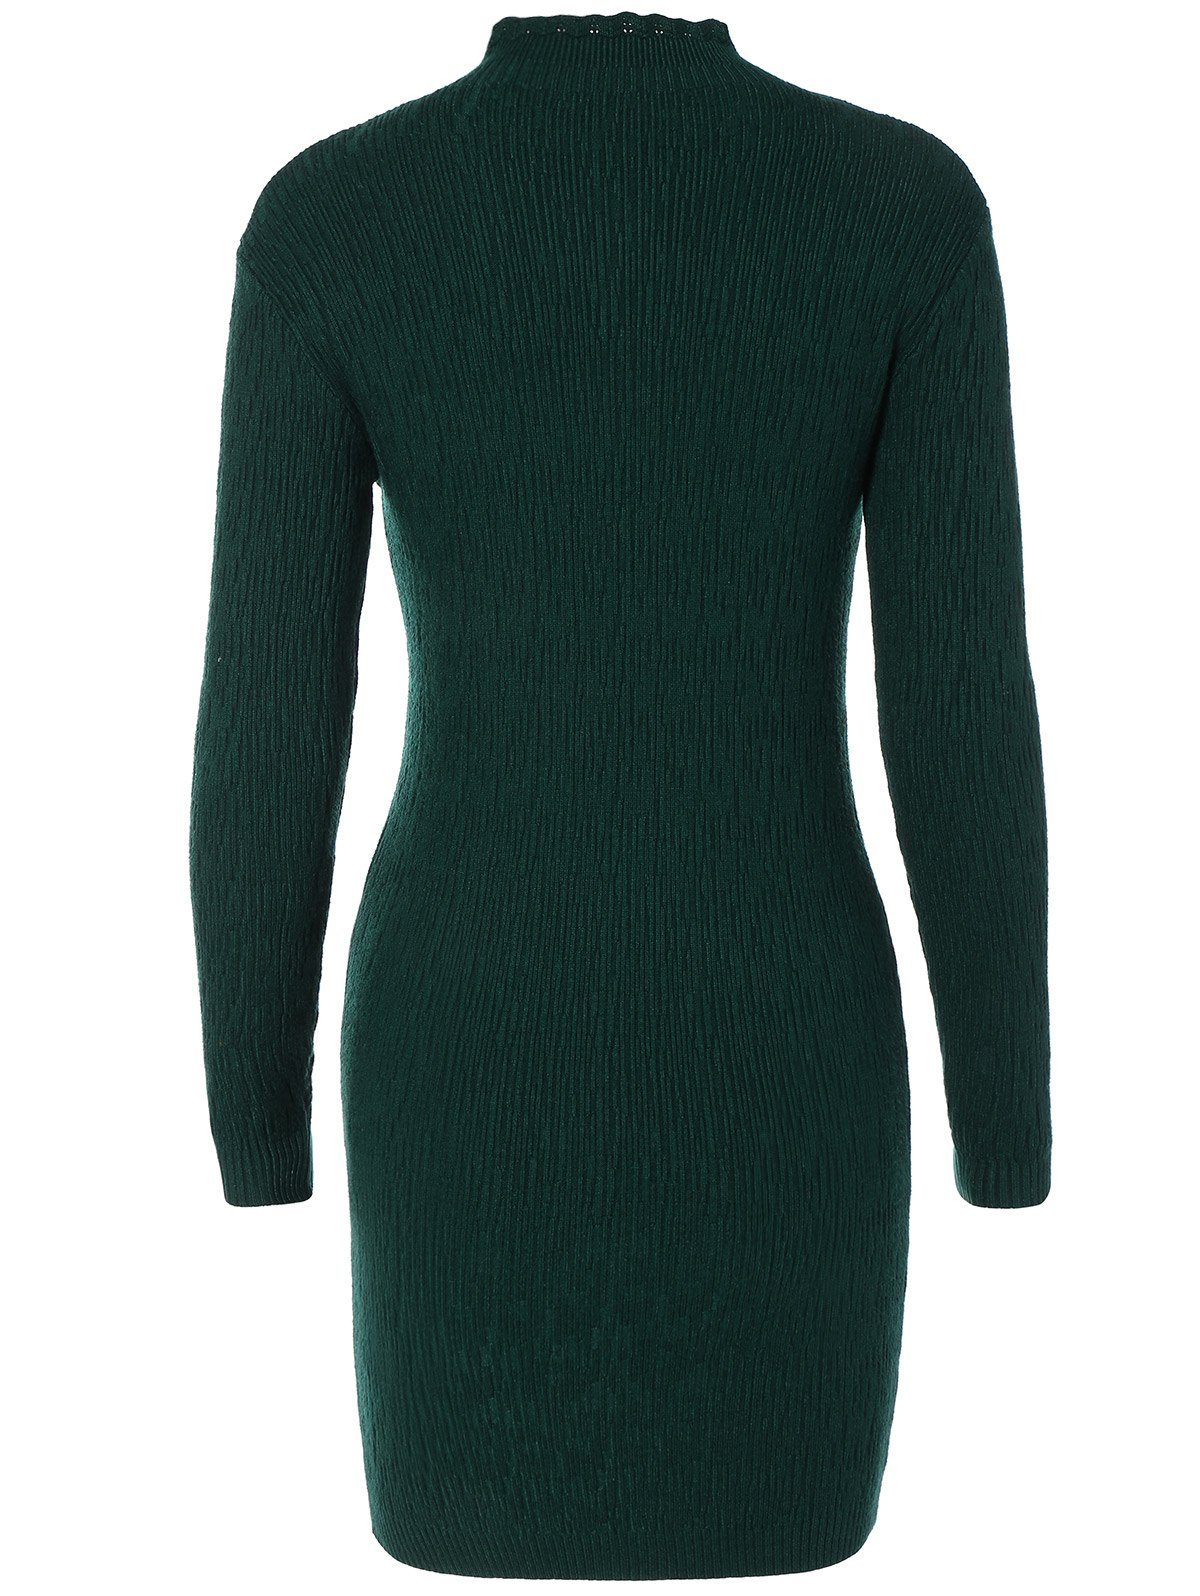 Ruffle Long Sleeve Fitted Sweater Dress - BLACKISH GREEN ONE SIZE